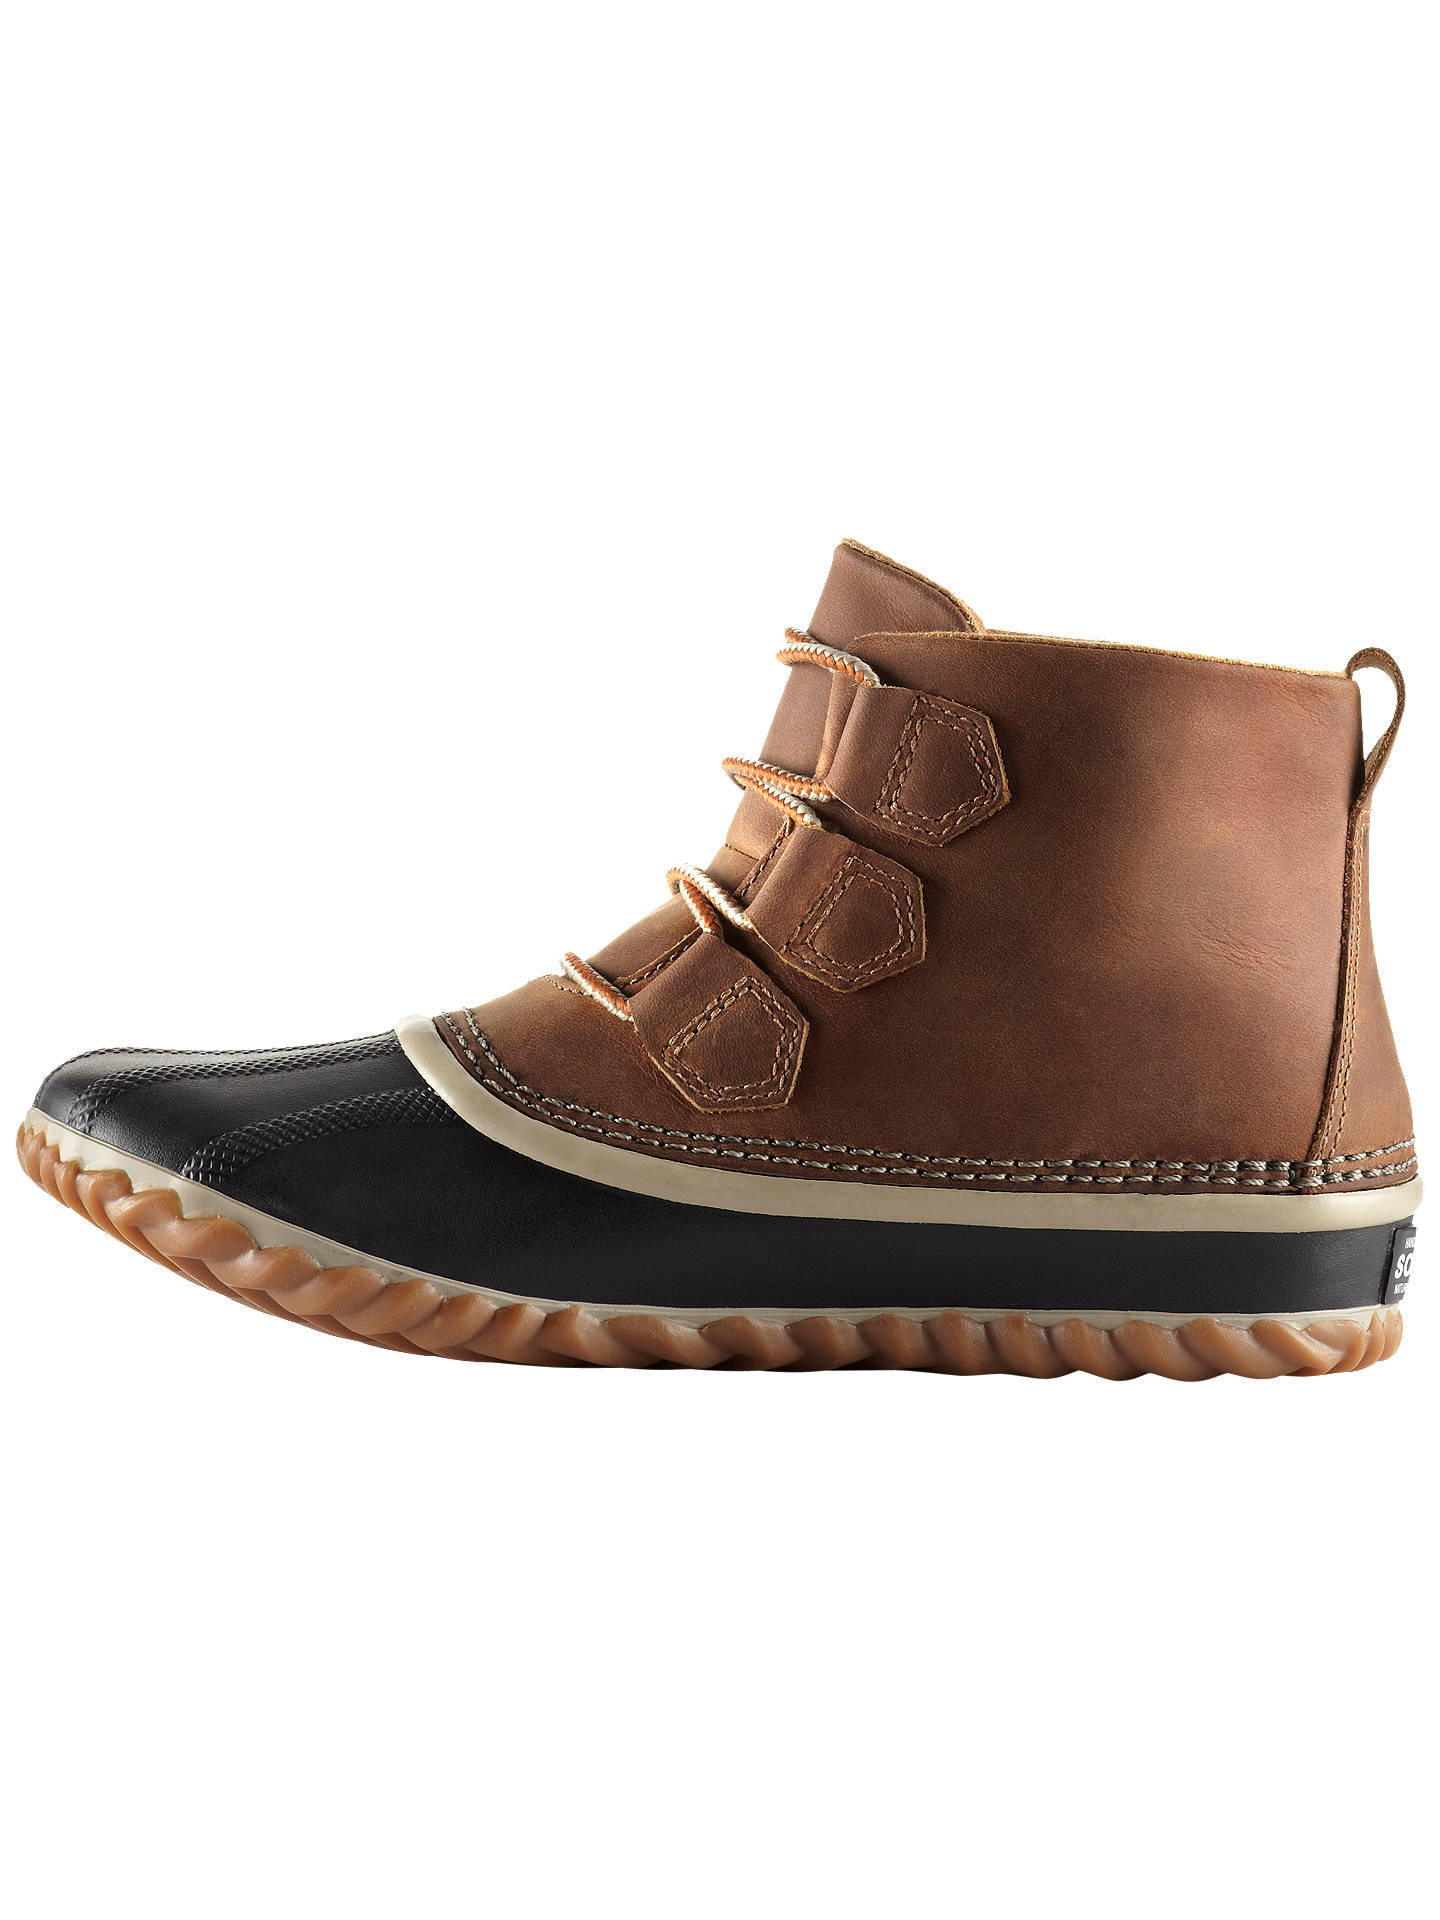 BuySorel Out N About Leather Women's Duck Snow Boots, Elk, 4 Online at johnlewis.com